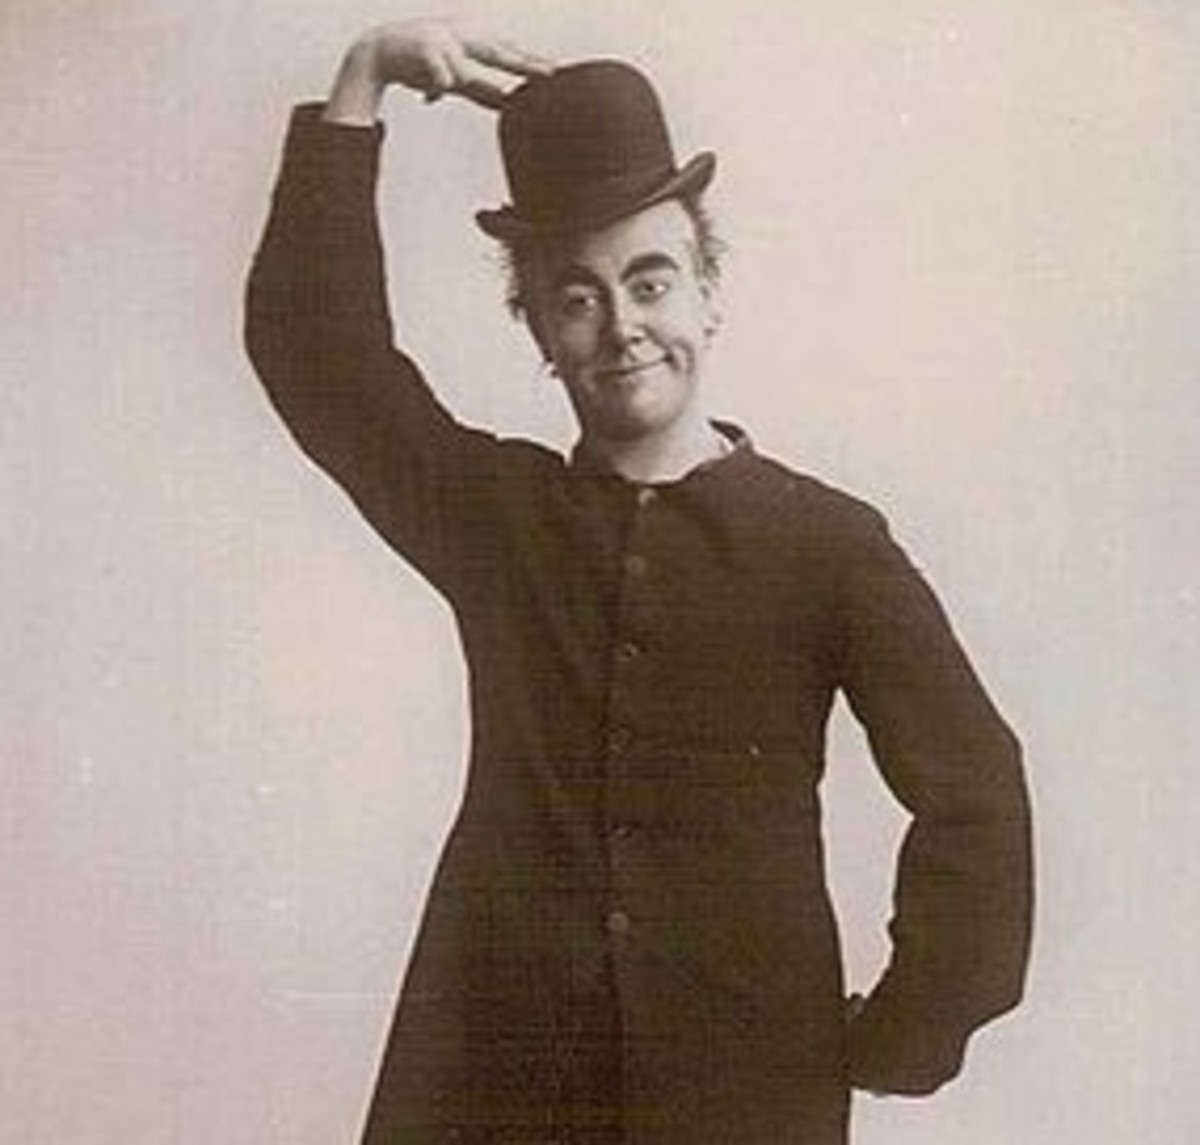 George Robey. Later, he squashed down the bowler for greater comic effect. He was knighted a few months before his death in 1954 at 85.